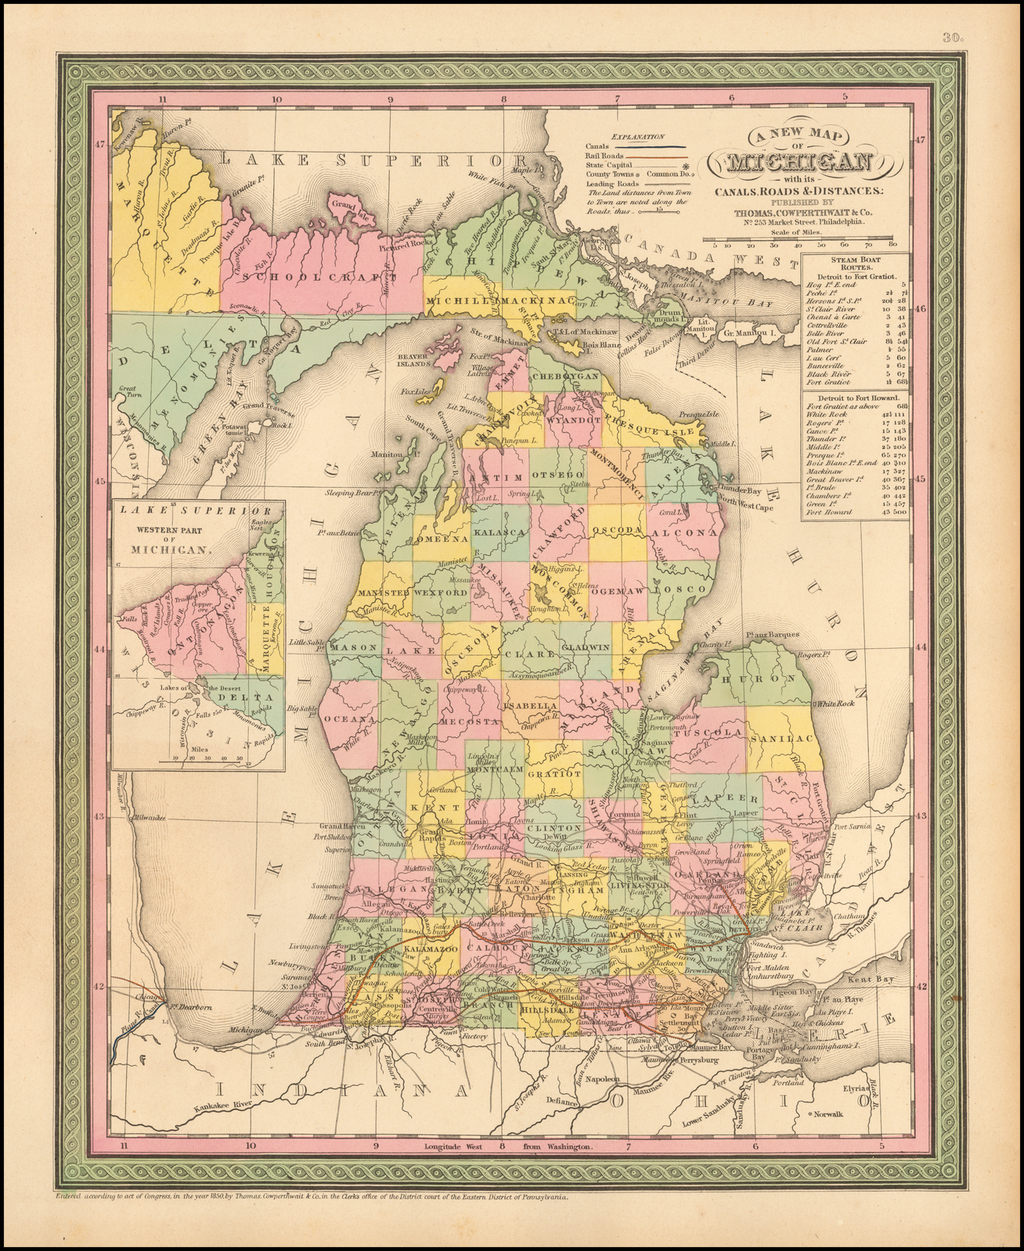 A New Map Of Michigan with its Canals, Roads & Distances By Thomas Cowperthwait & Co.